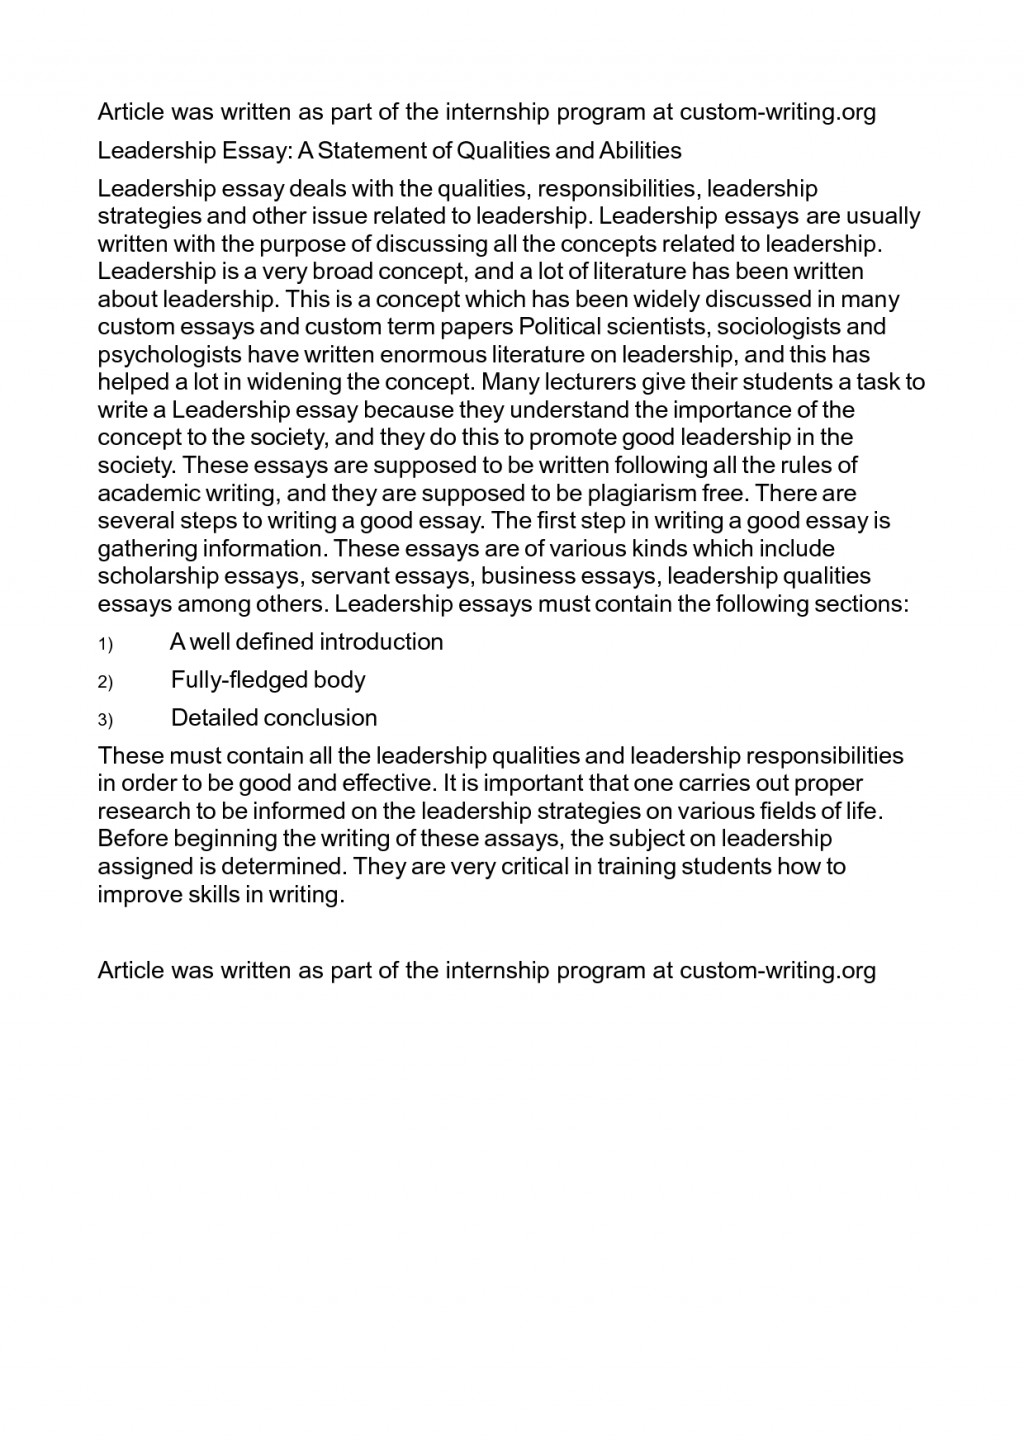 002 Essay Example What Makes Good Leader On Leadership College Top Rated Paper Jk6ua Schulich Scholarship Examples I Am Effective Sample Master Awesome A Pdf Successful Large